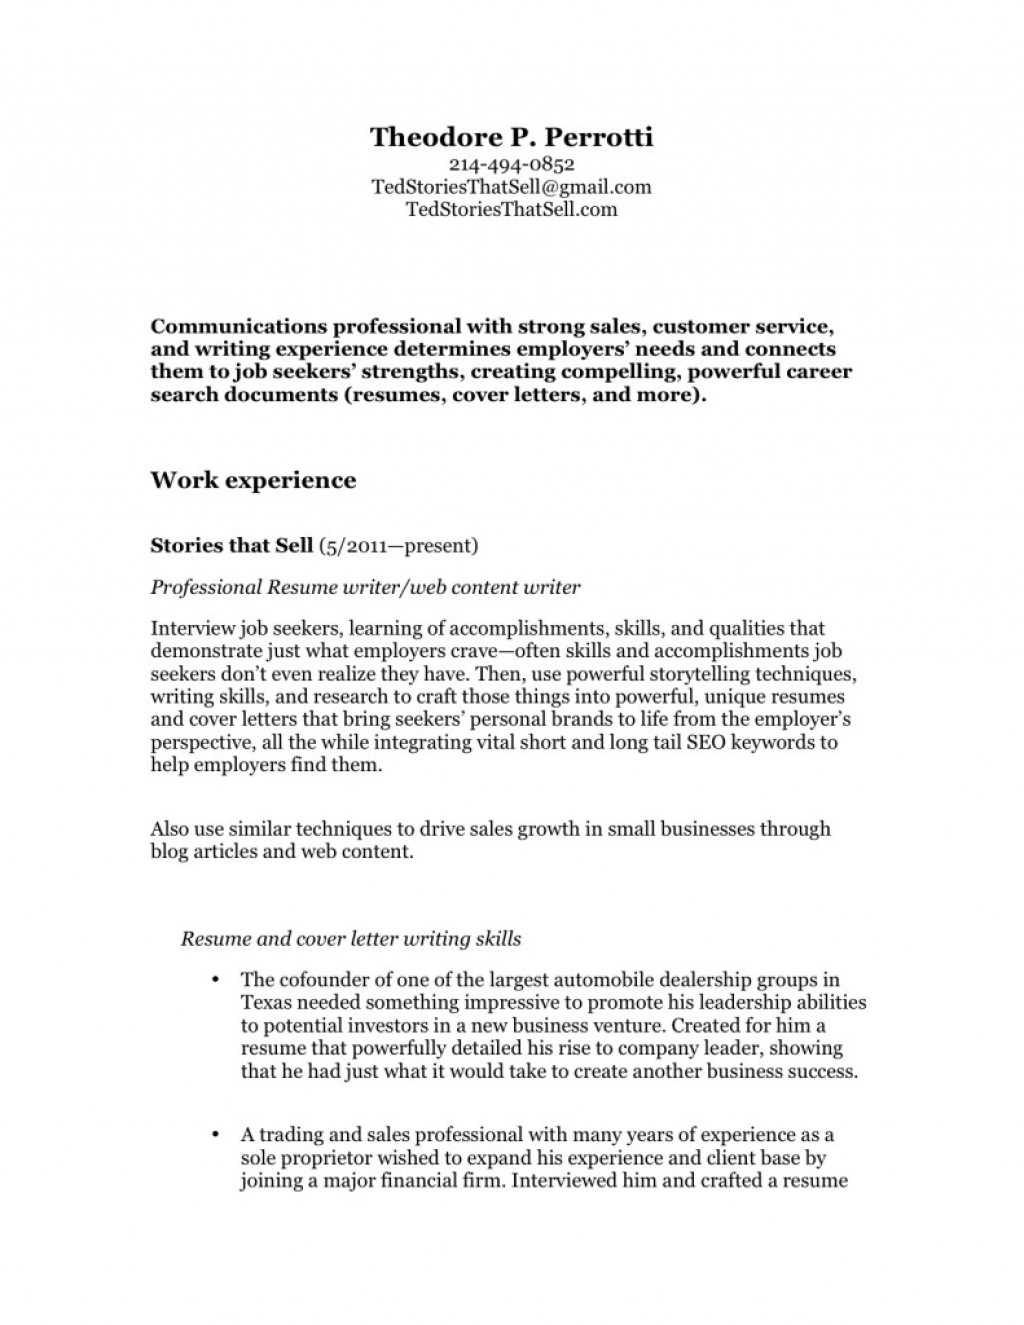 009 Ted Perrotti Professional Resume Writer Presentation New For Web P 791x1024 Fsu Essay Surprising Help Guidelines Topics Large